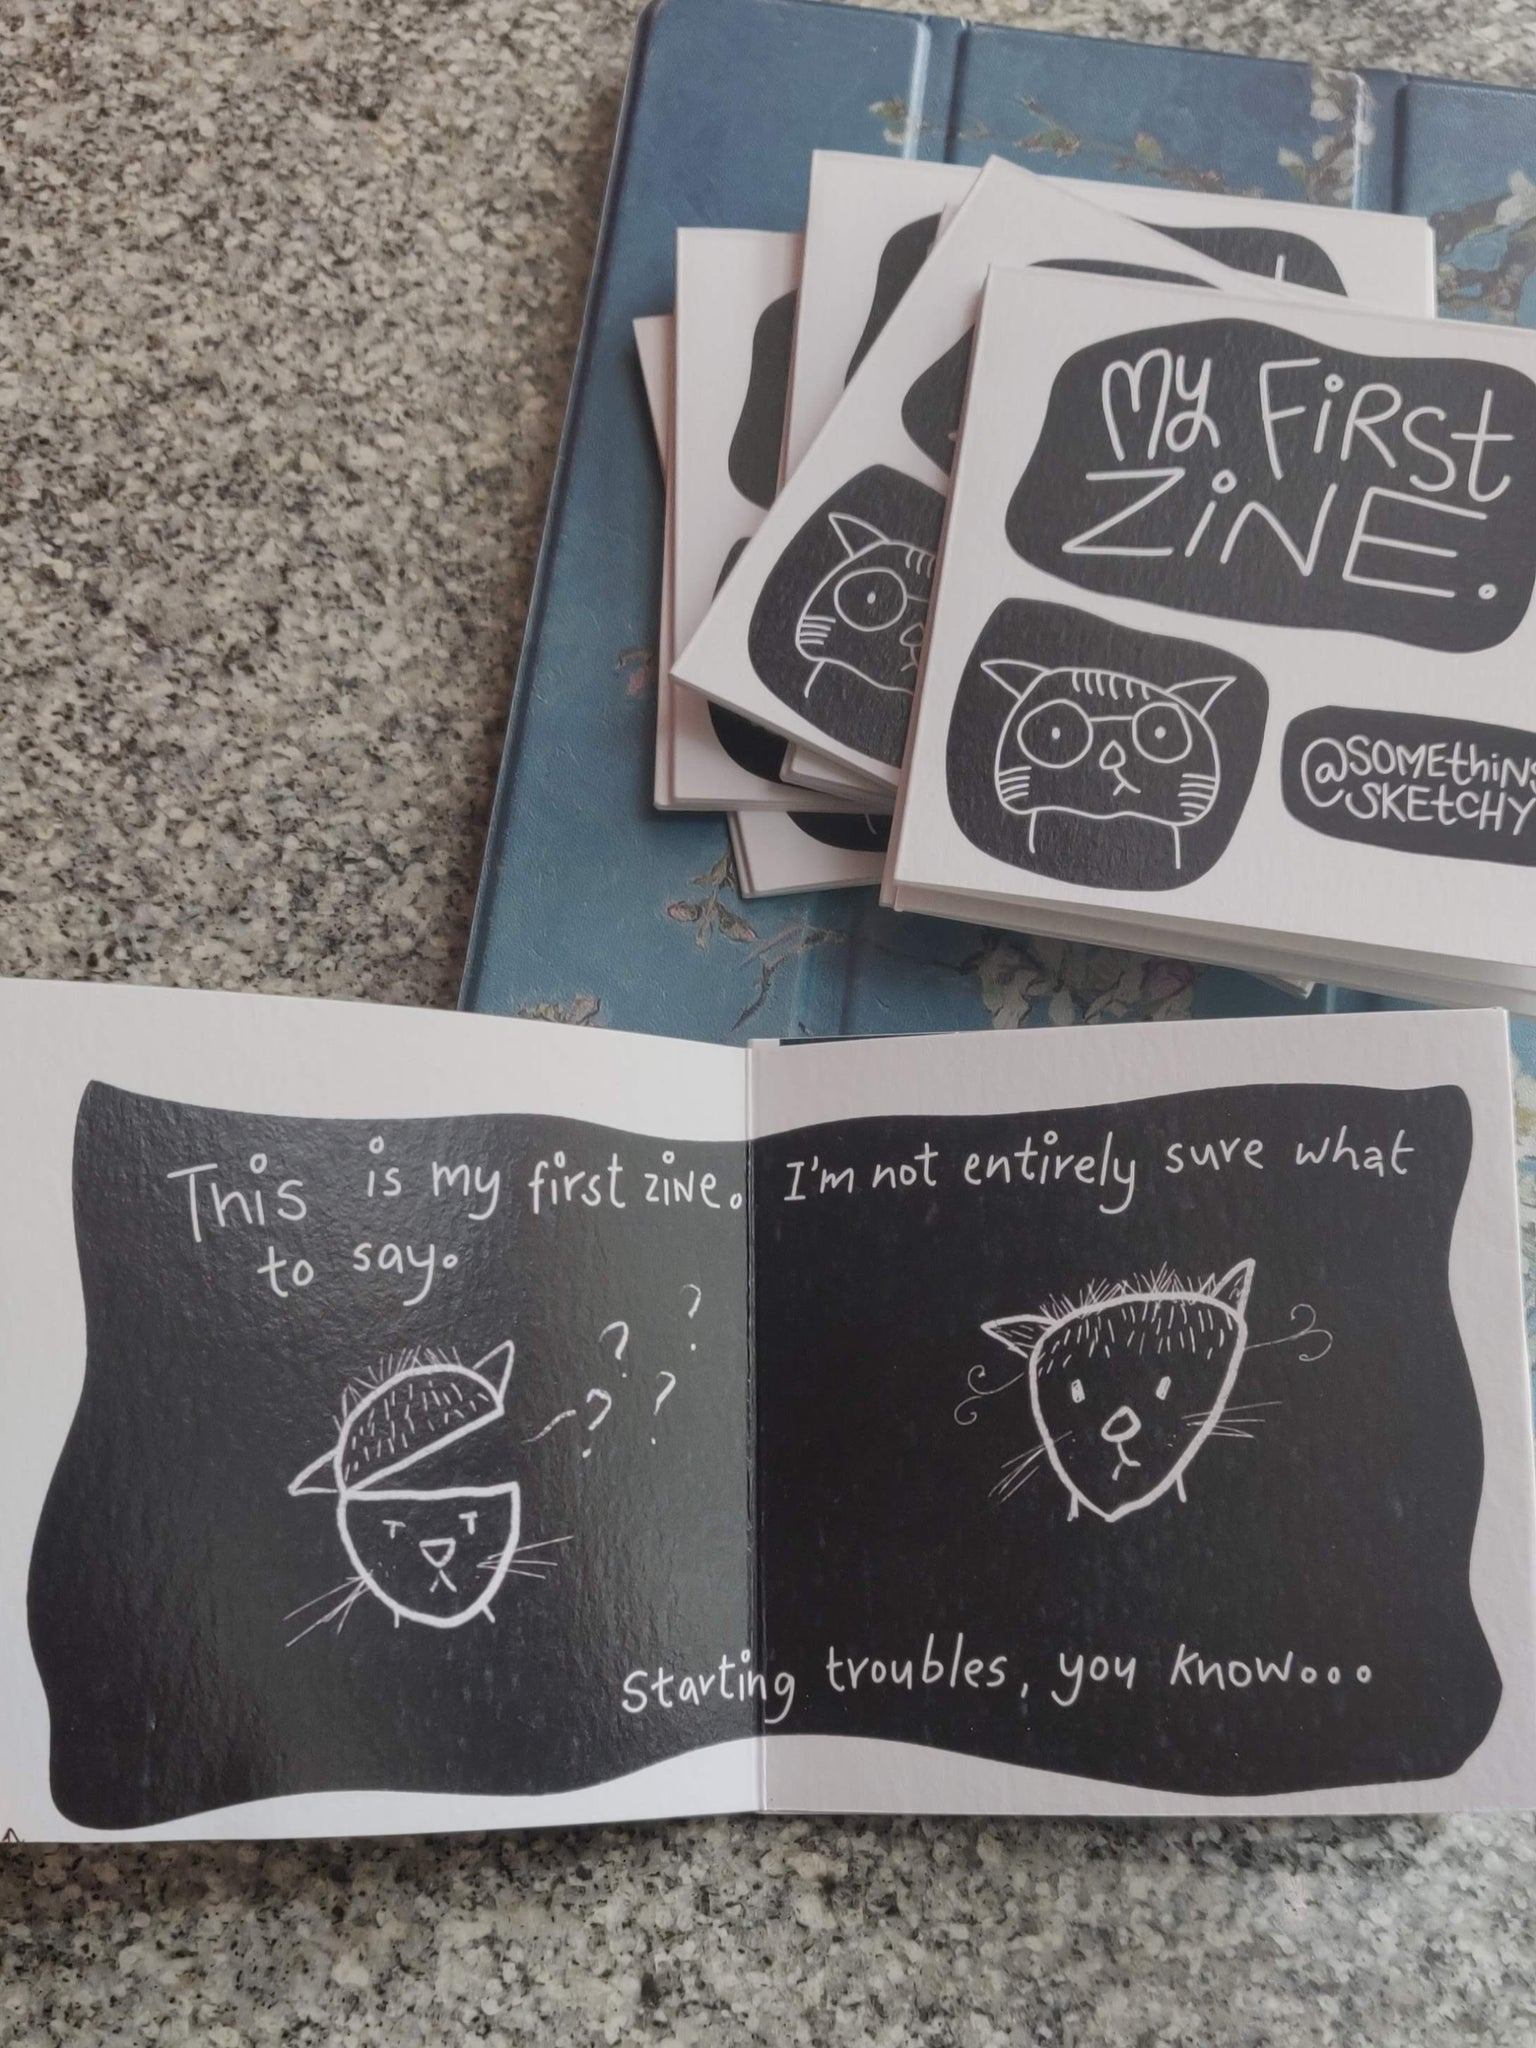 The Creative Process (My First Zine)